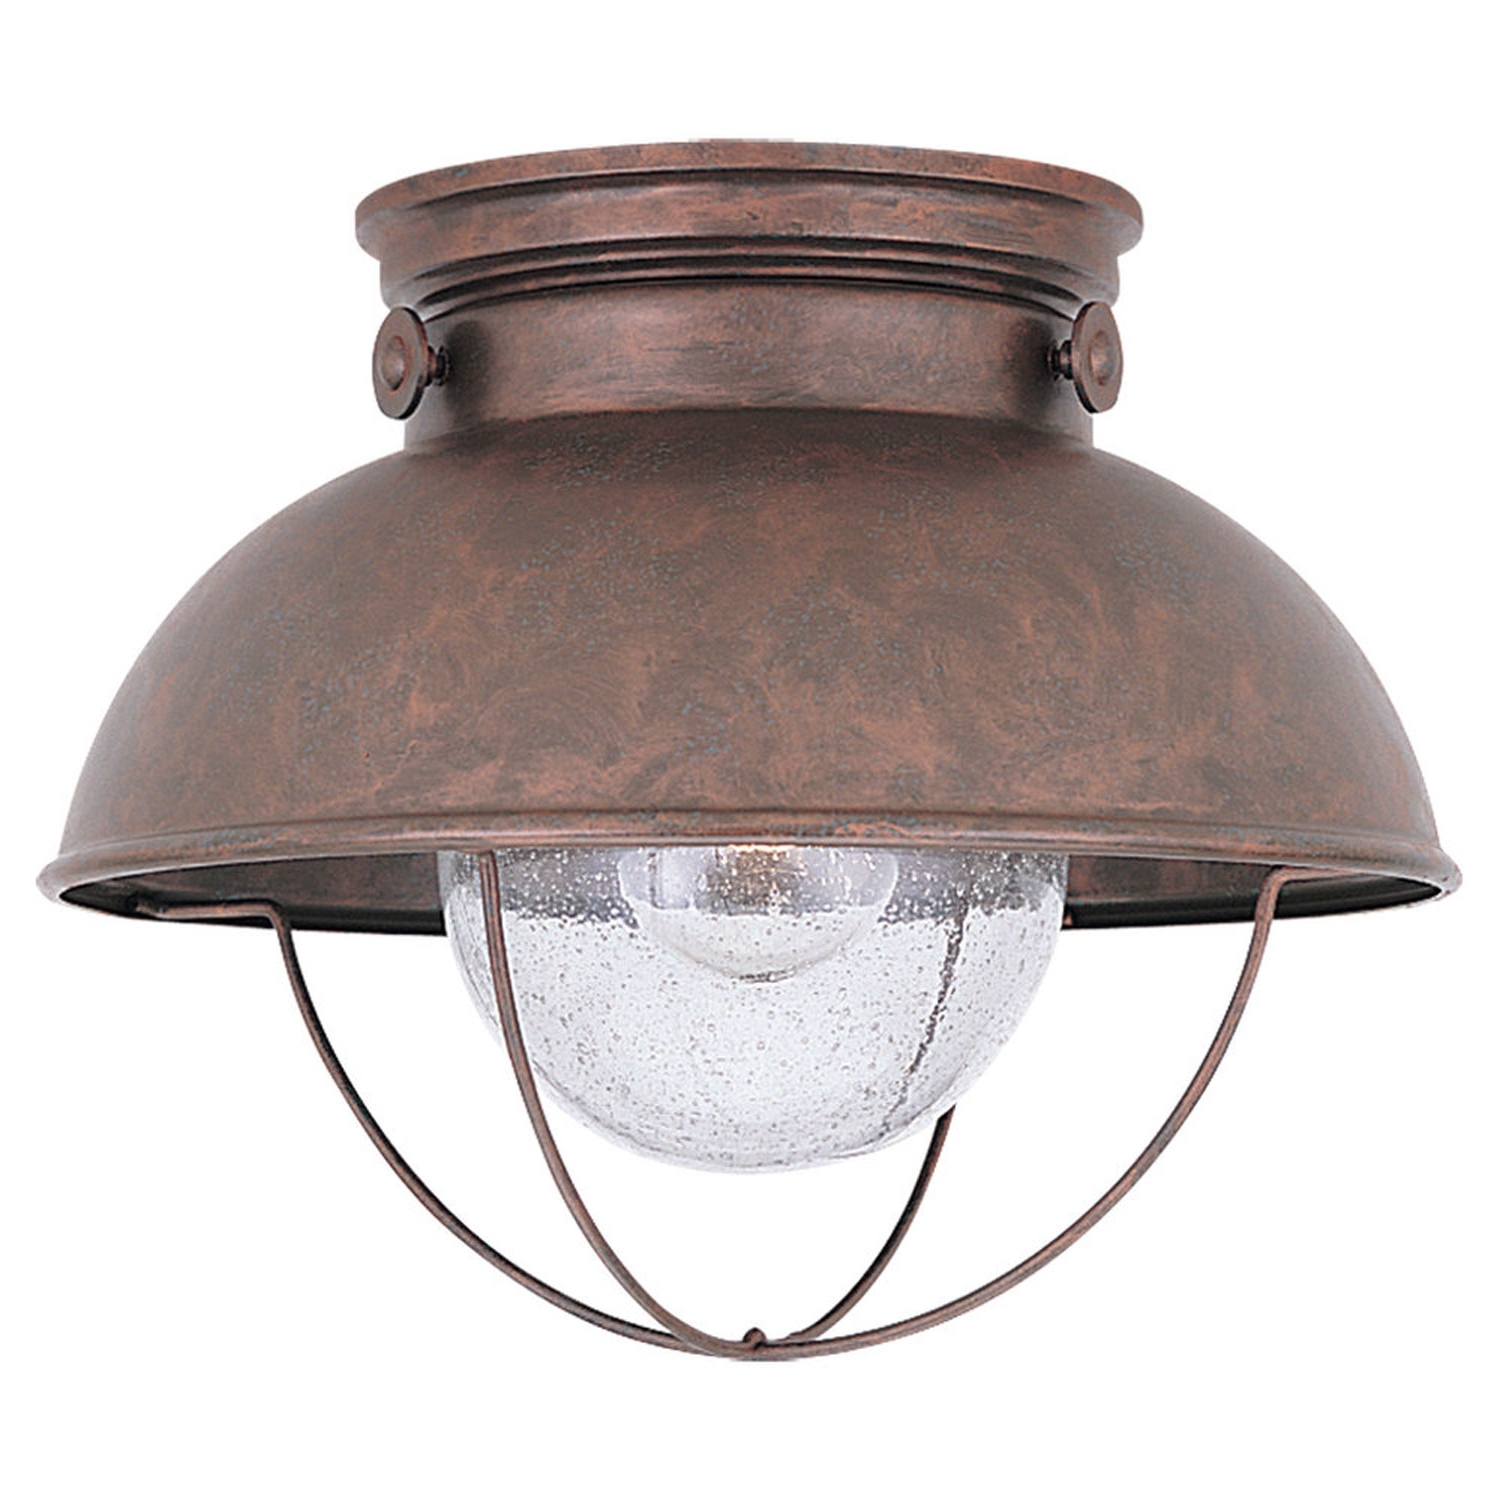 Sea Gull Lighting Sebring Weathered Copper Outdoor Ceiling Light Pertaining To Best And Newest Rustic Outdoor Ceiling Lights (View 17 of 20)